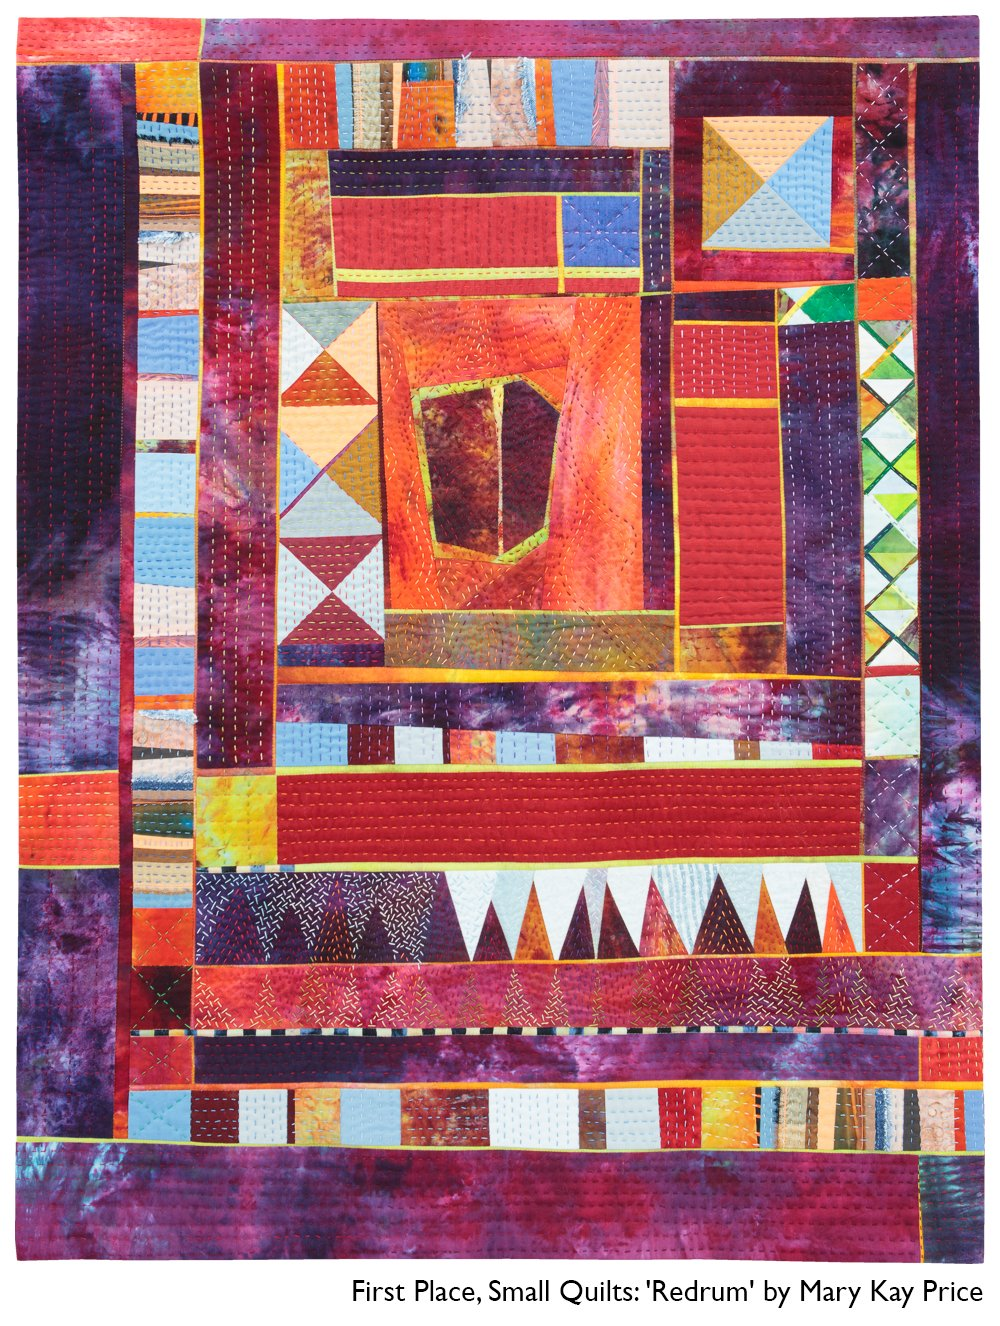 2017 Quilt Winners at the Northwest Quilting Expo : nw quilting expo - Adamdwight.com